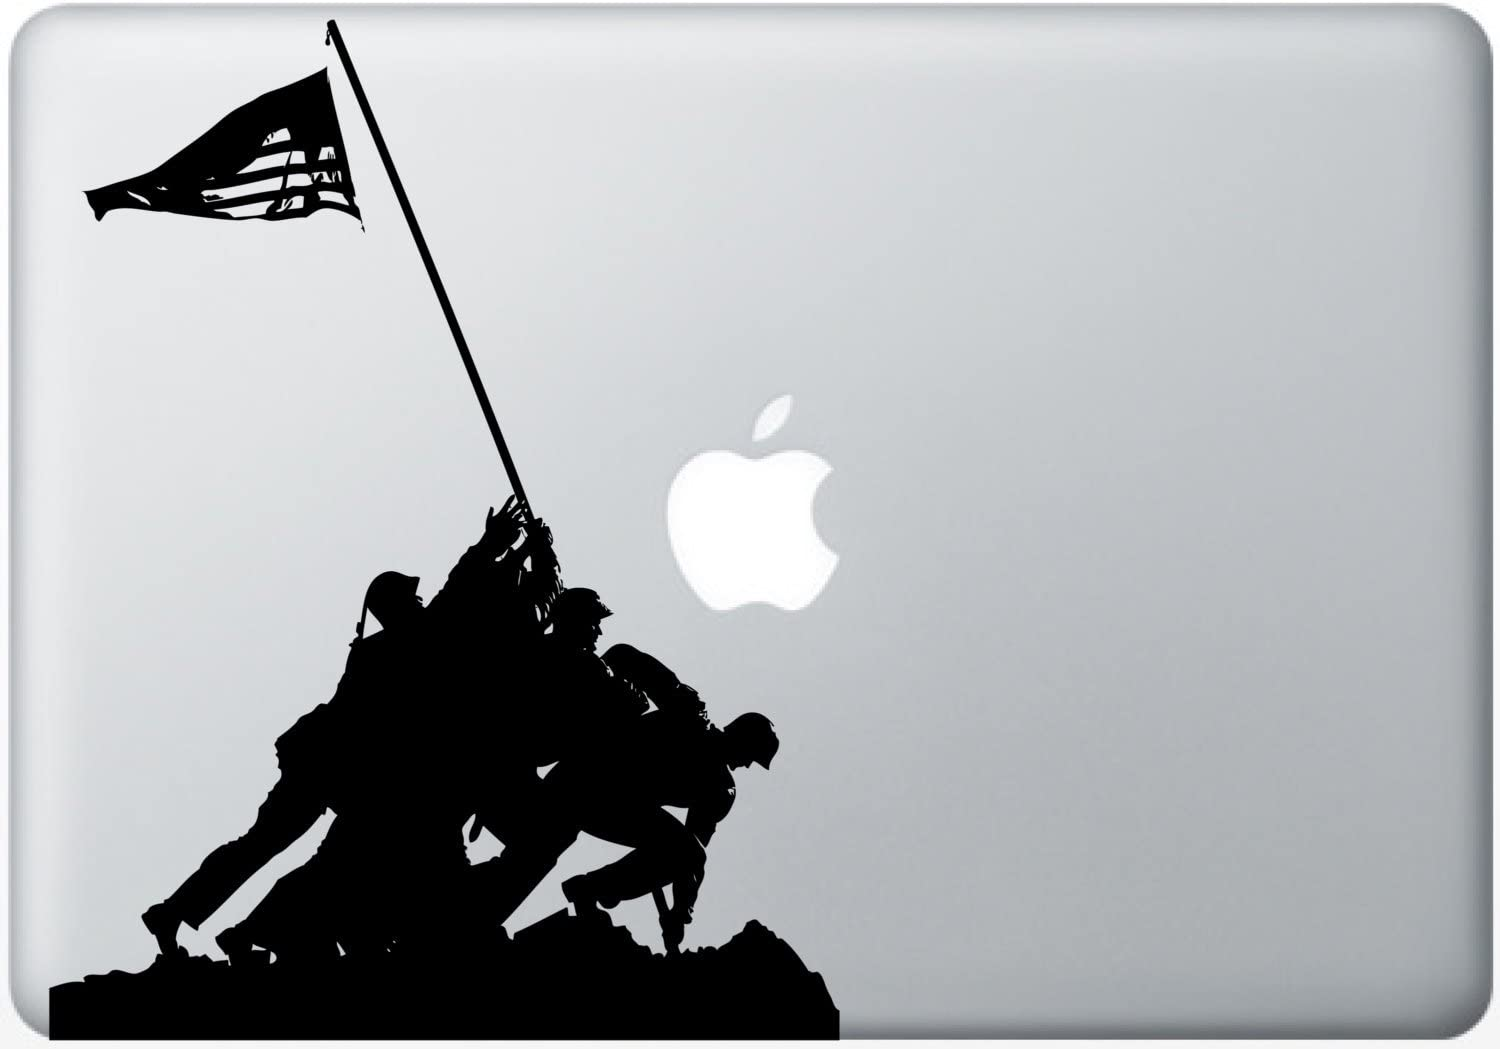 Silhouette cutout of American Marines raising the American Flag Decal Laptop Skin Sticker for Macbook, iPhone, Apple iPad